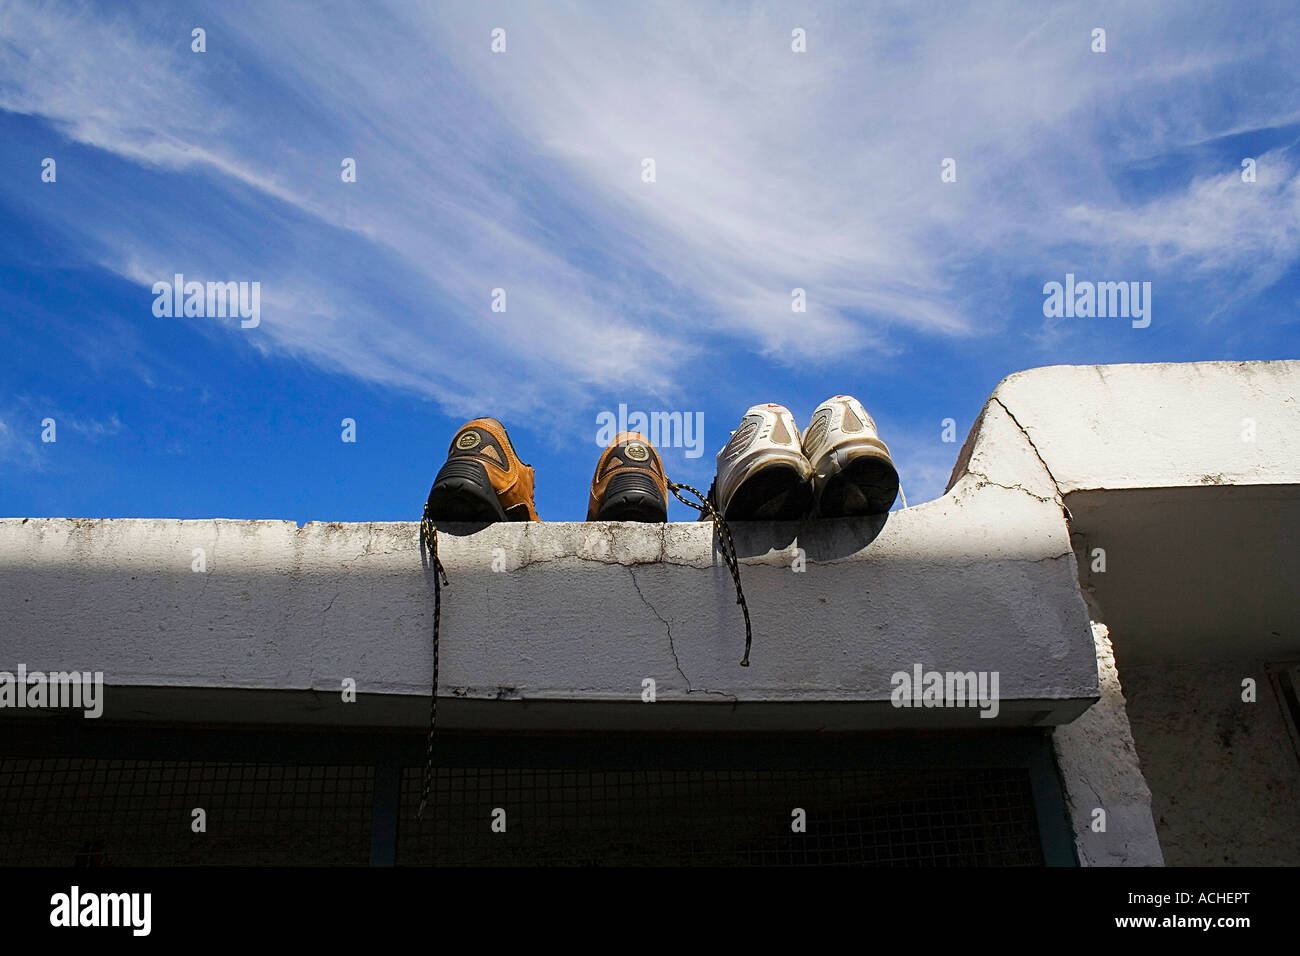 Drying off tennis Shoes - Stock Image